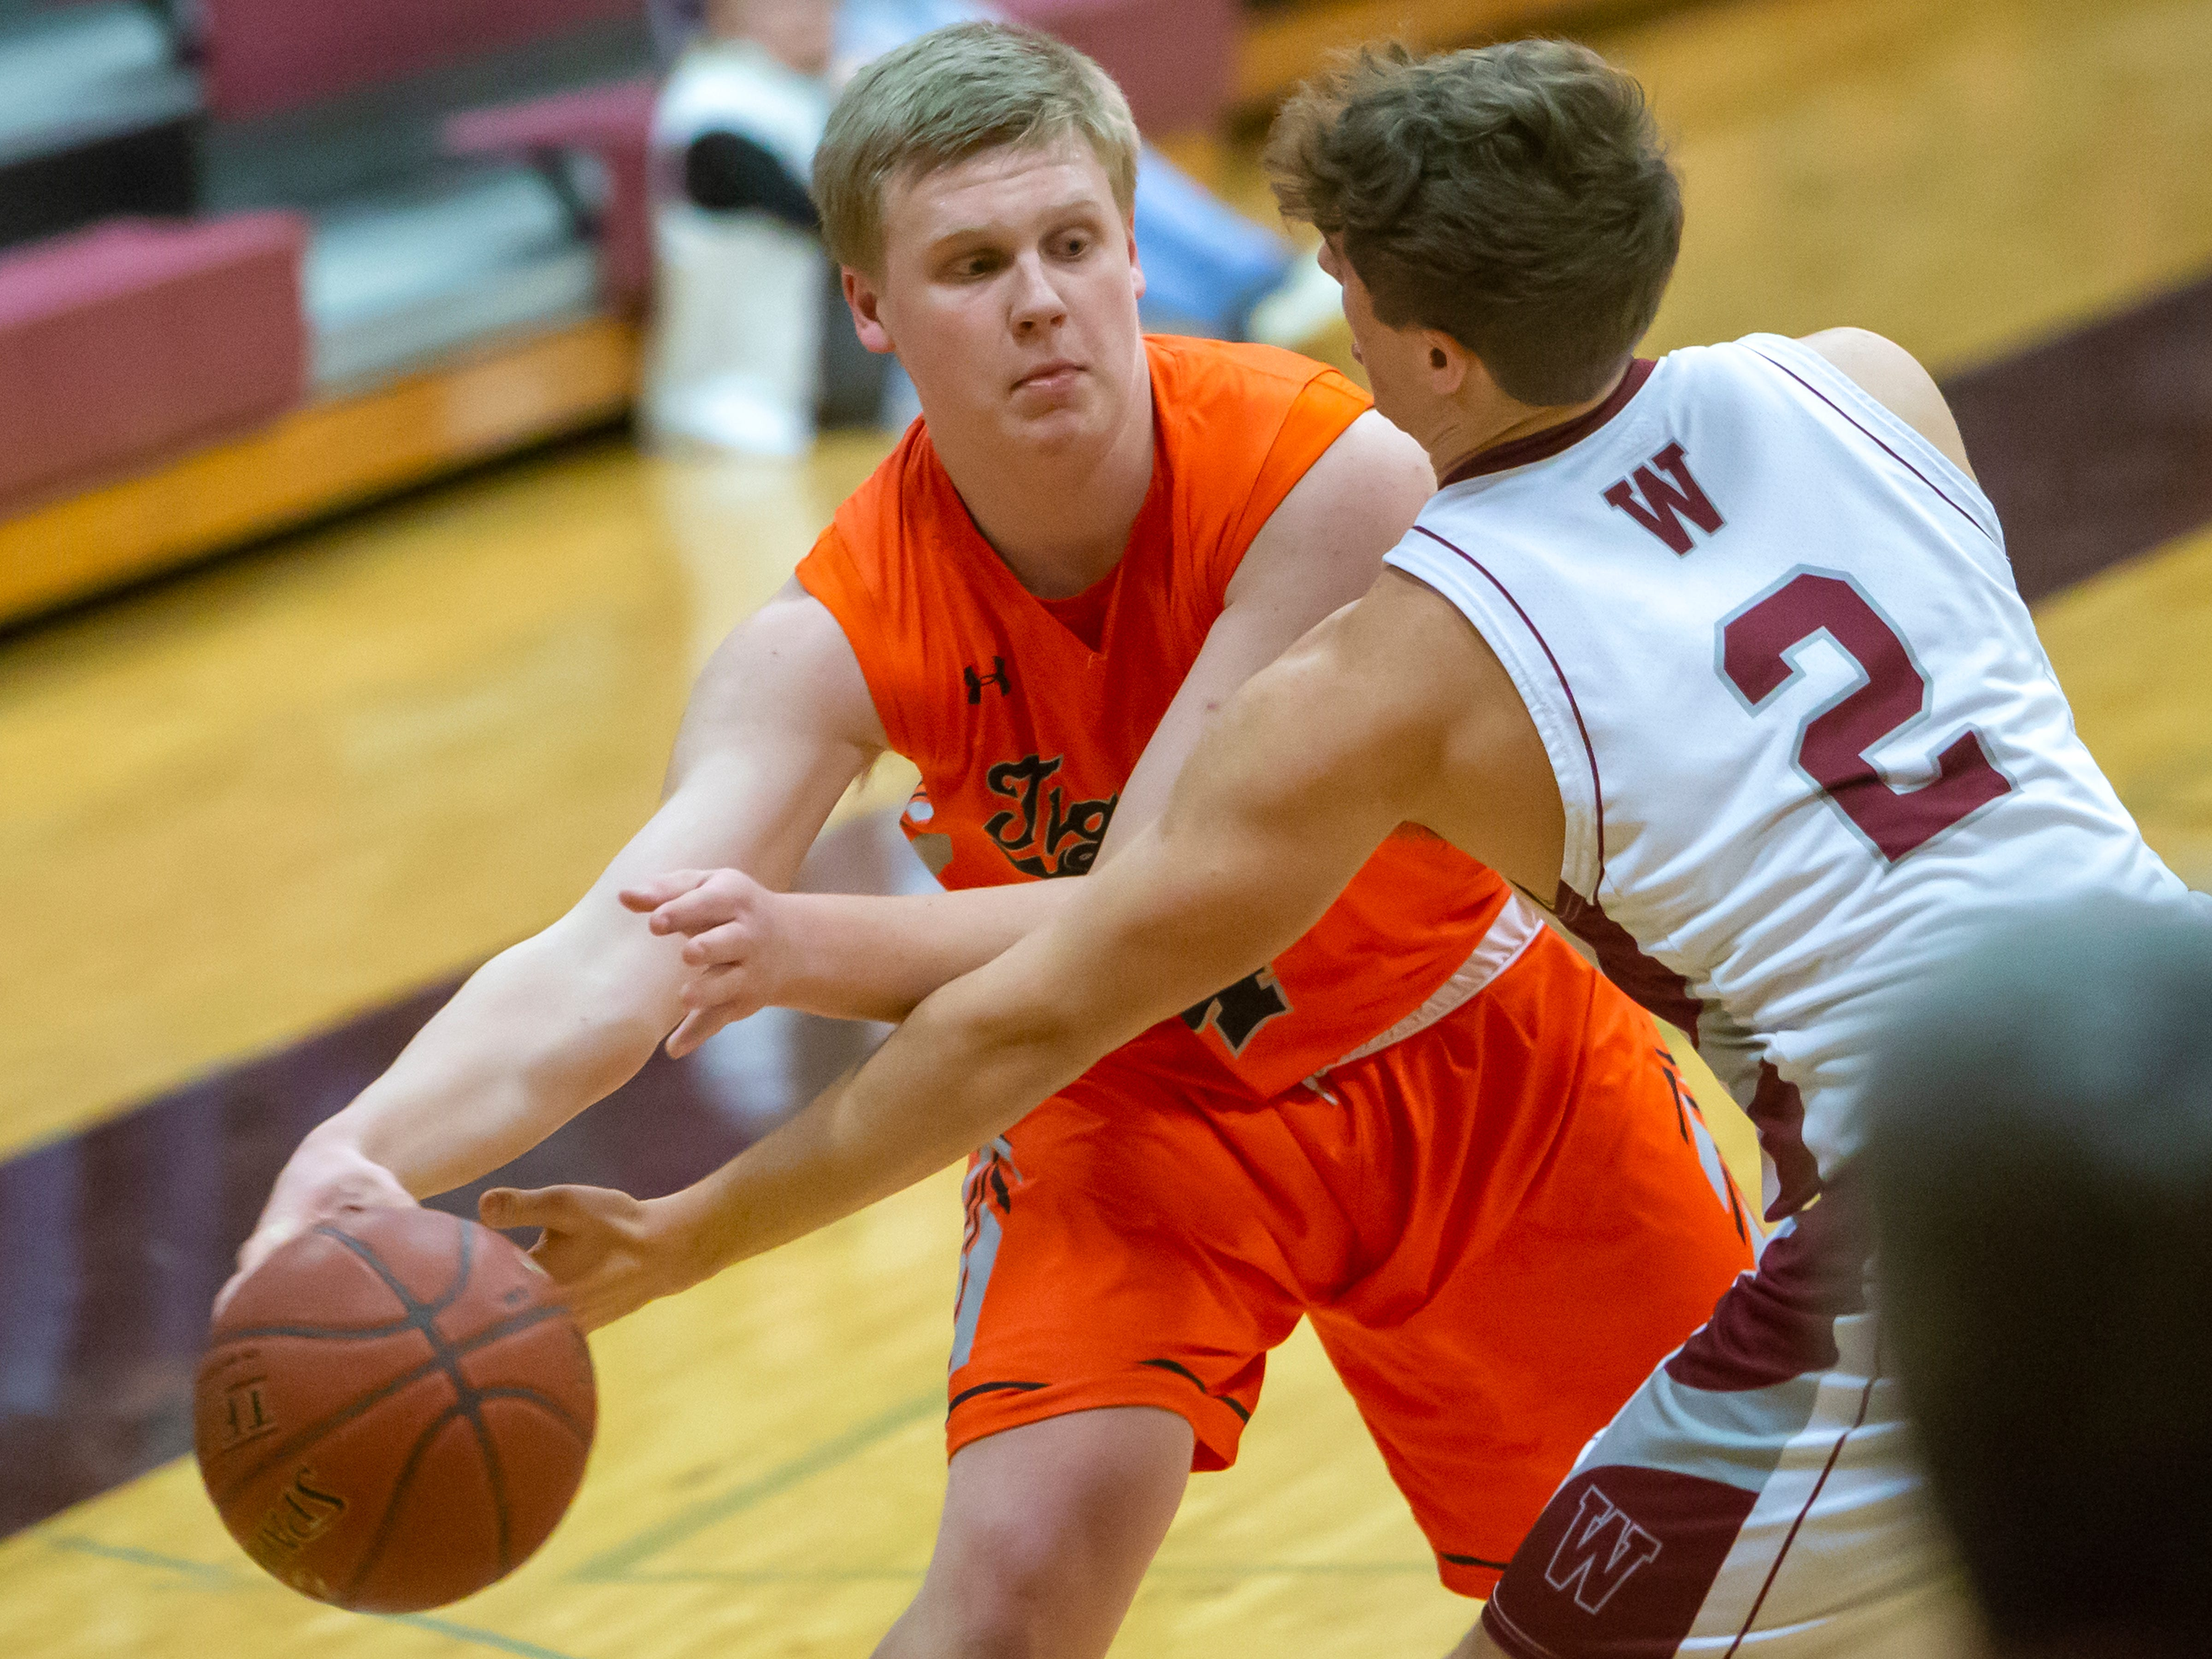 Ripon's Hunter Auchtung passes around Winneconne's Austin Hecker at Winneconne High School on Thursday, January 24, 2019.